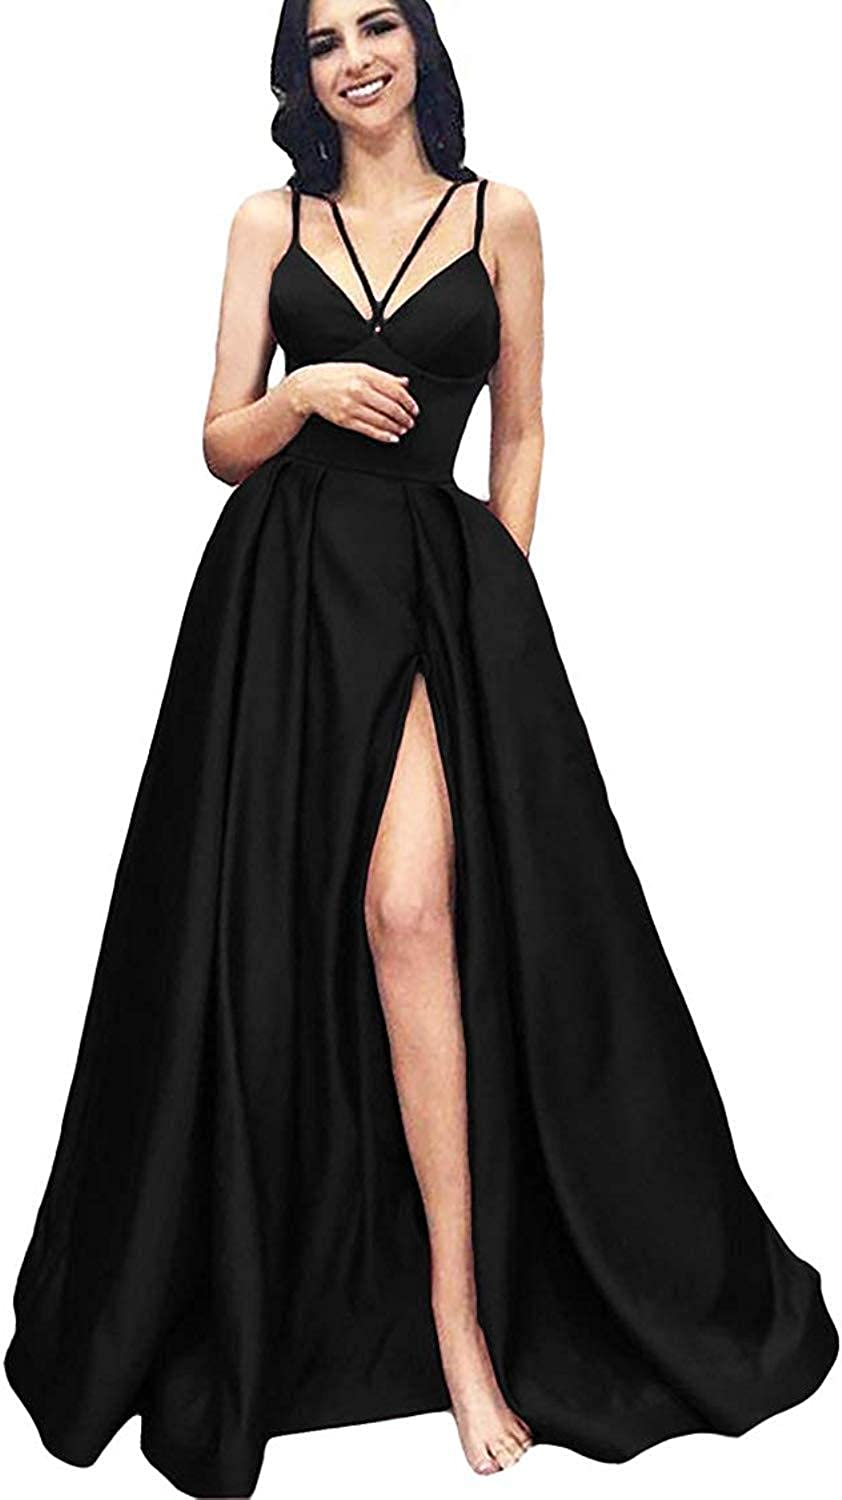 EverBeauty Womens Aline Satin Prom Dress 2019 Long Slit Evening Formal Gown with Pockets